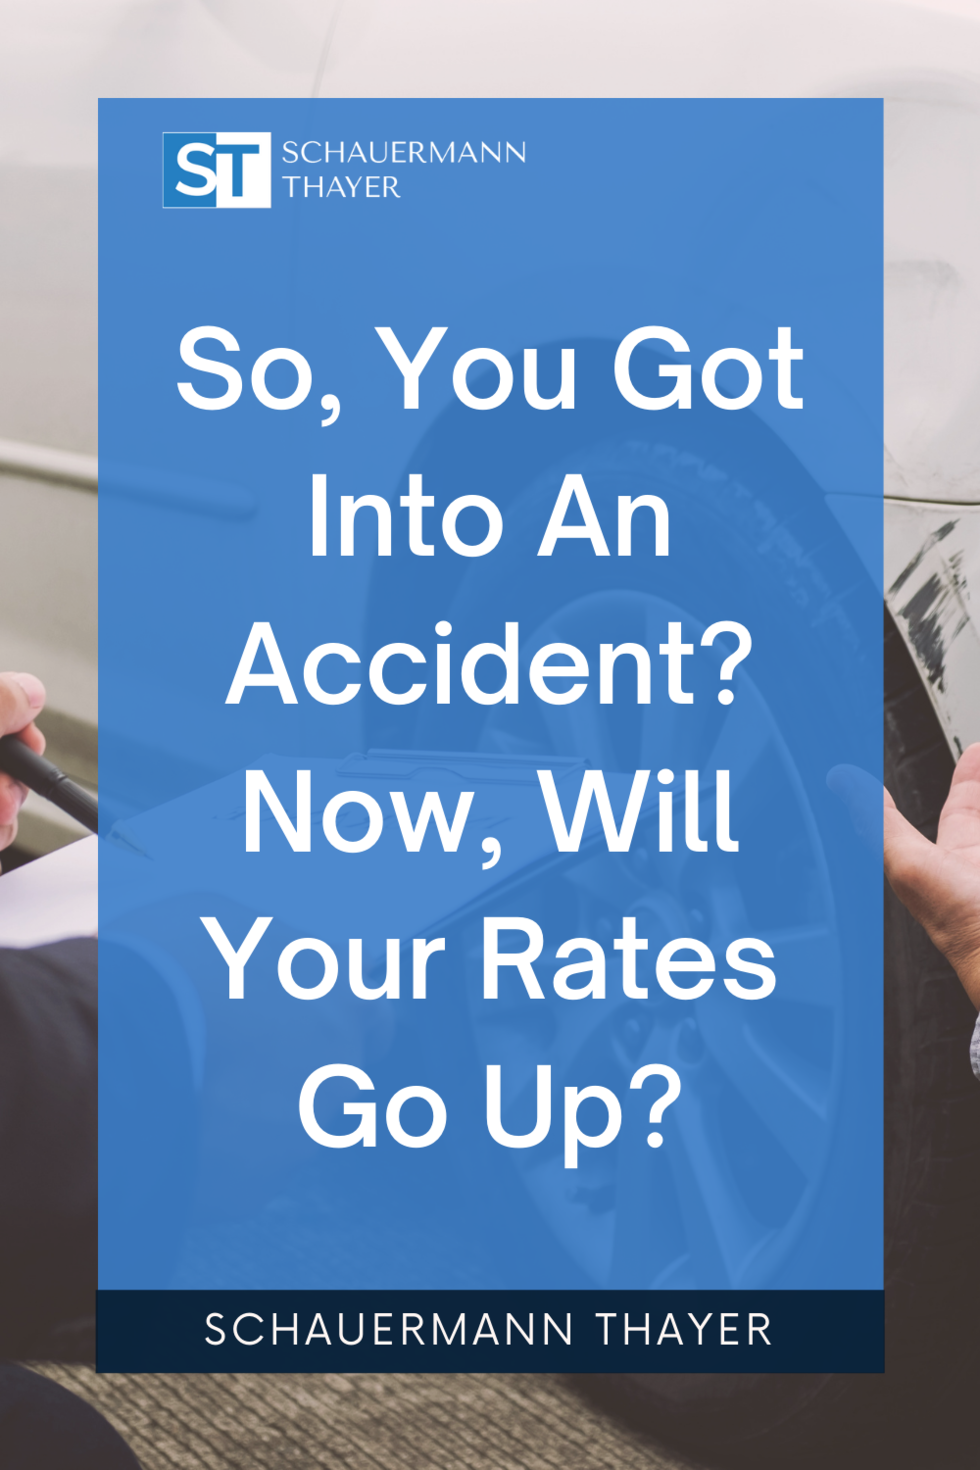 insurance_rates_go_up_after_accident